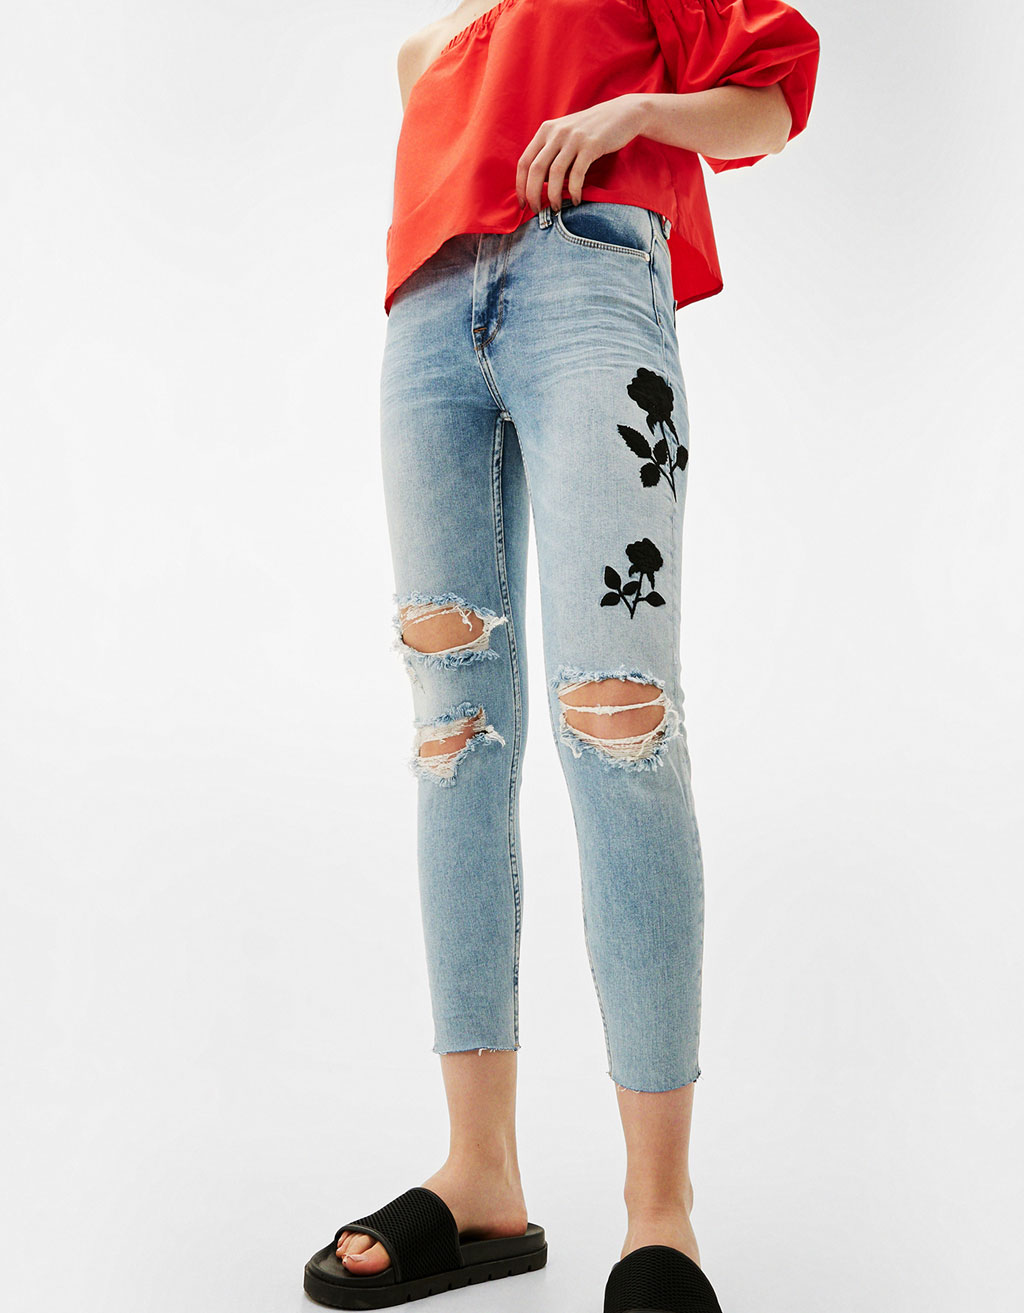 Skinny jeans with black embroidered rose